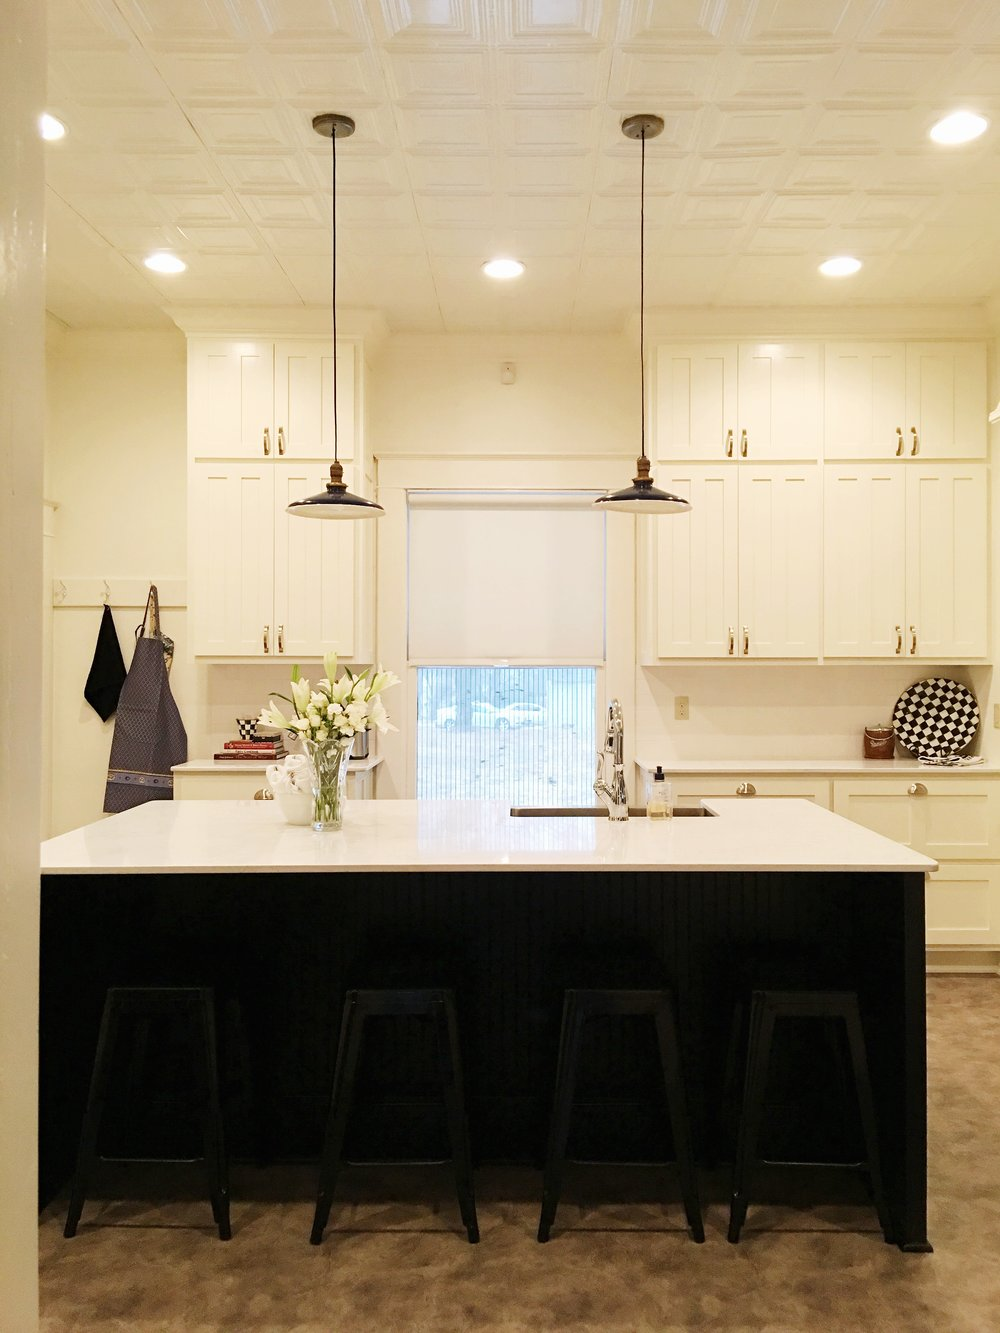 sharpe-house-kitchen-redone